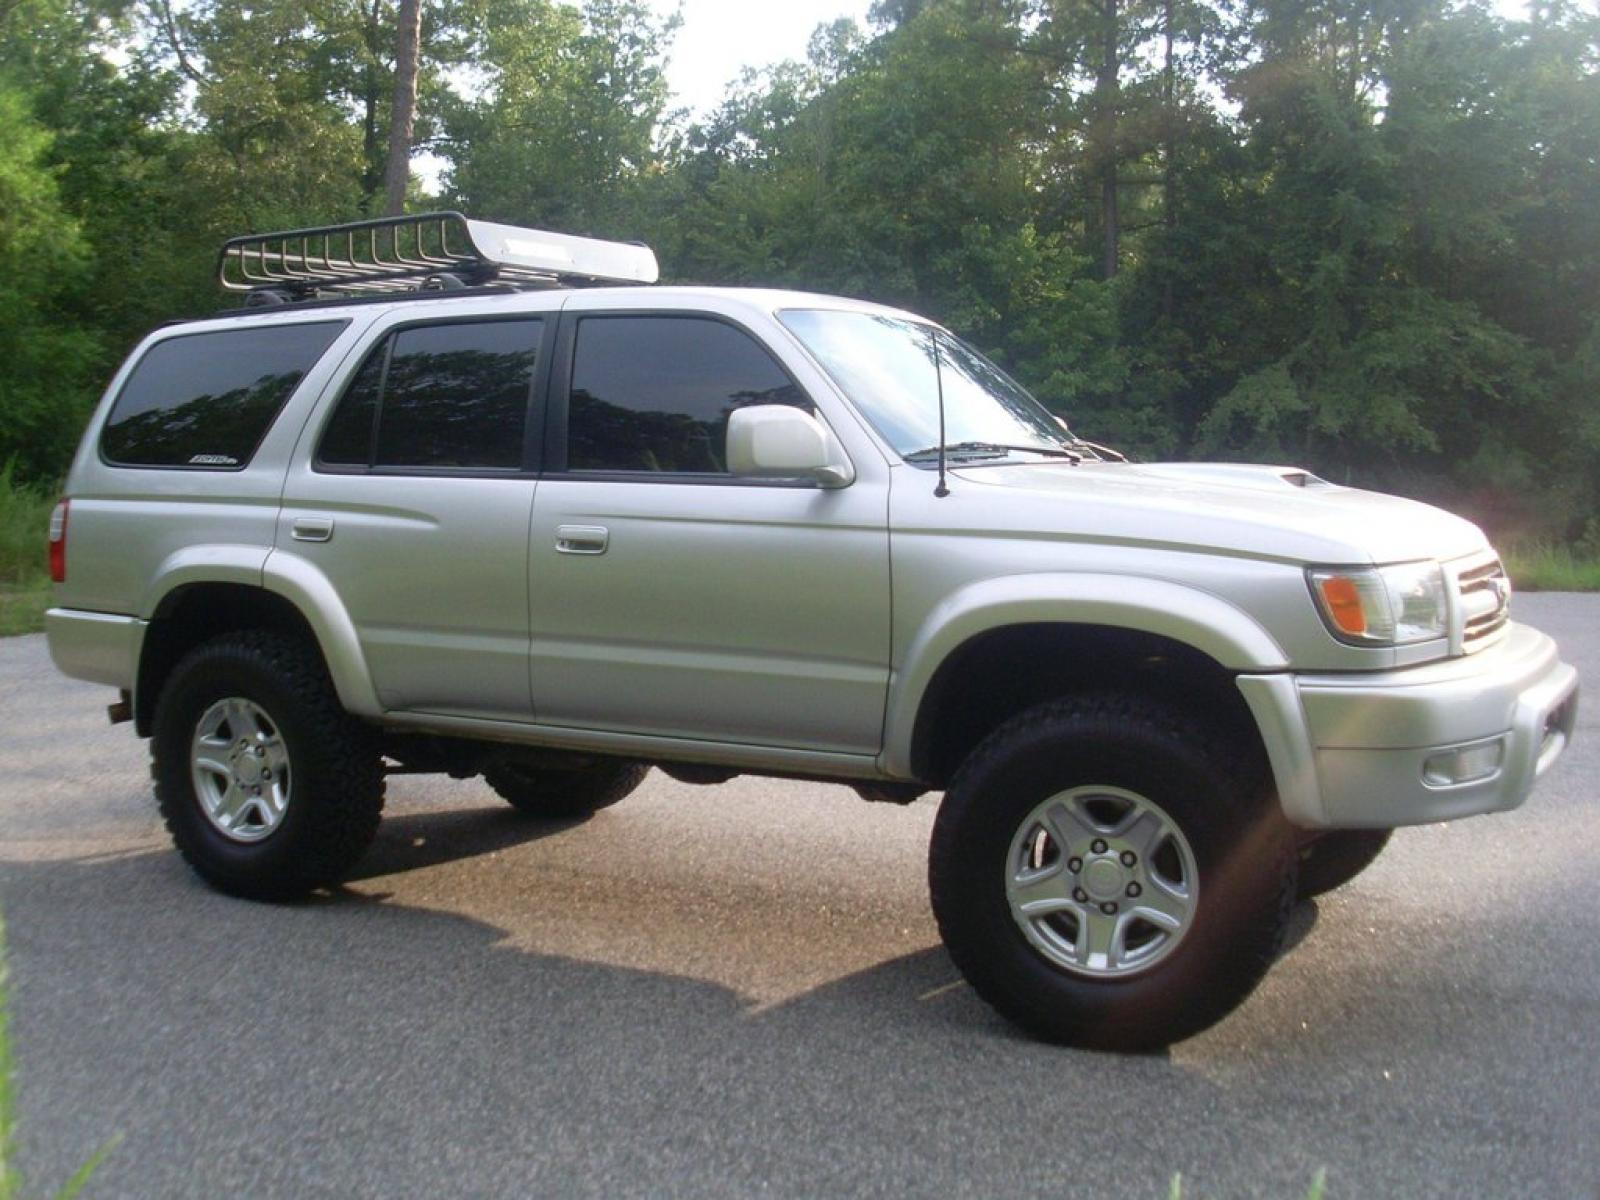 Amazing 800 1024 1280 1600 Origin 2000 Toyota 4Runner ...